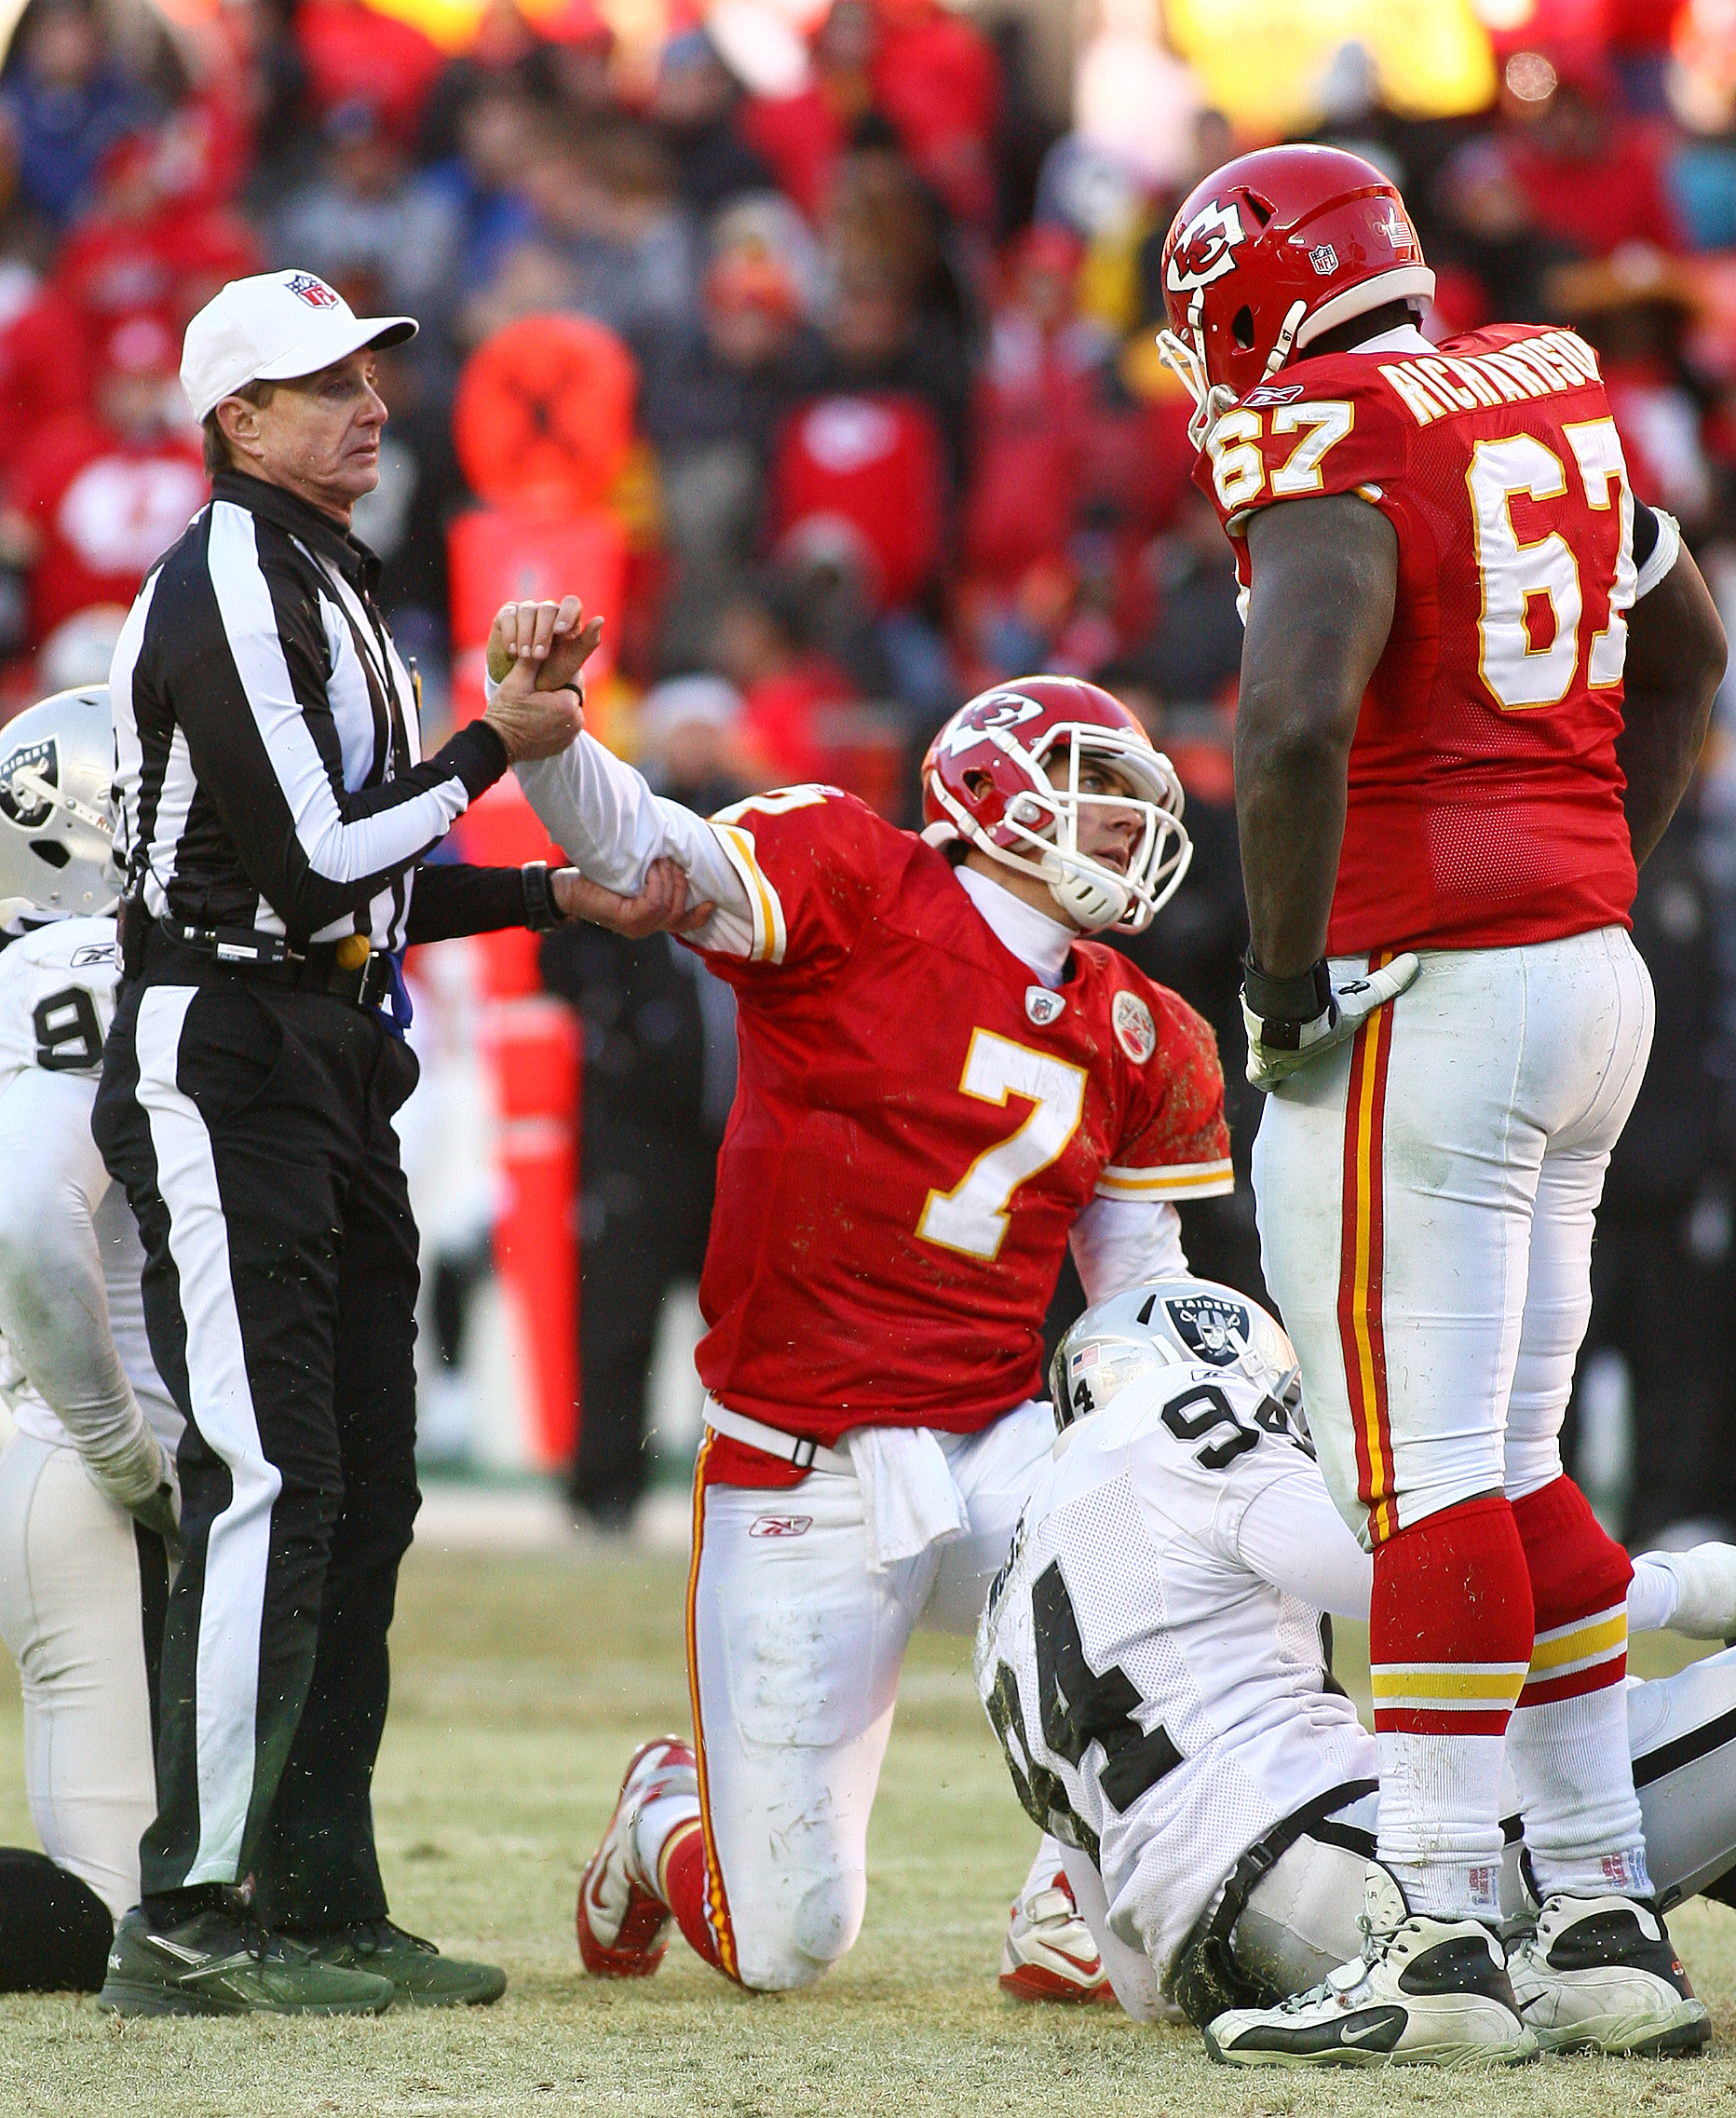 KANSAS CITY, MO - JANUARY 02:  Quarterback Matt Cassel #7 of the Kansas City Chiefs is helped off the ground by the referee after being sacked in a game against the Oakland Raiders at Arrowhead Stadium on January 2, 2011 in Kansas City, Missouri.  The Rai